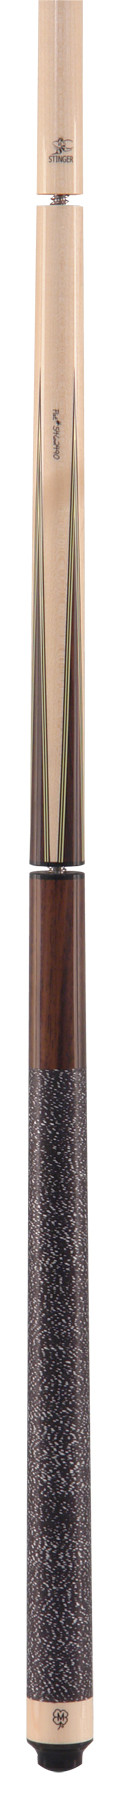 McDermott Stinger NG01W Break/Jump Pool Cue